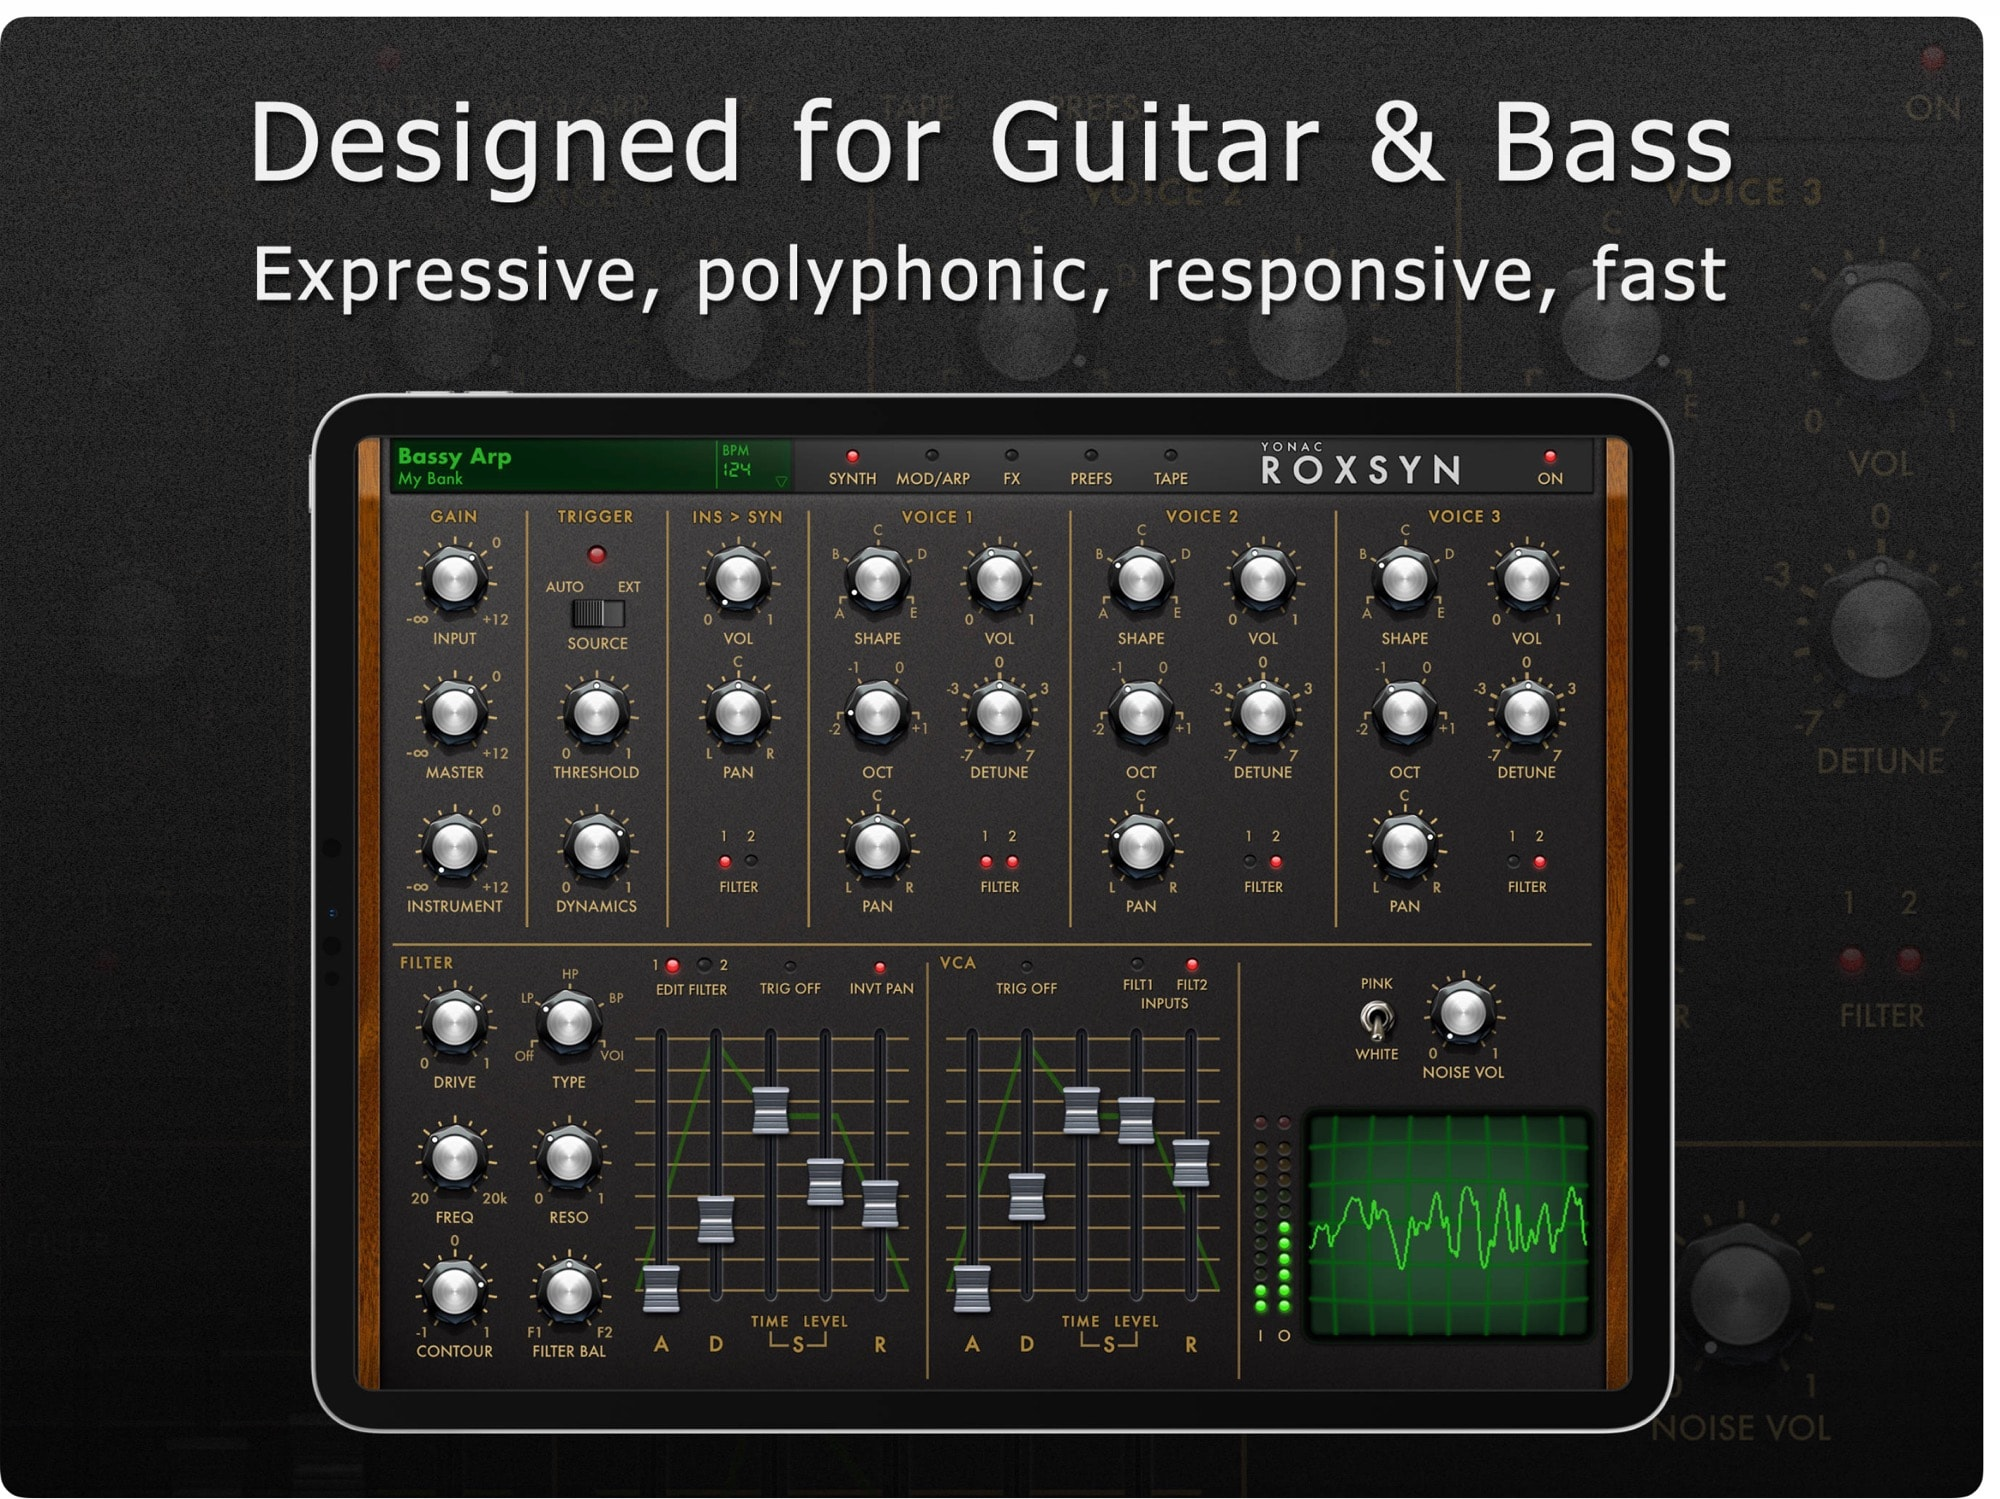 Roxsyn guitar synthesizer app has knobs!